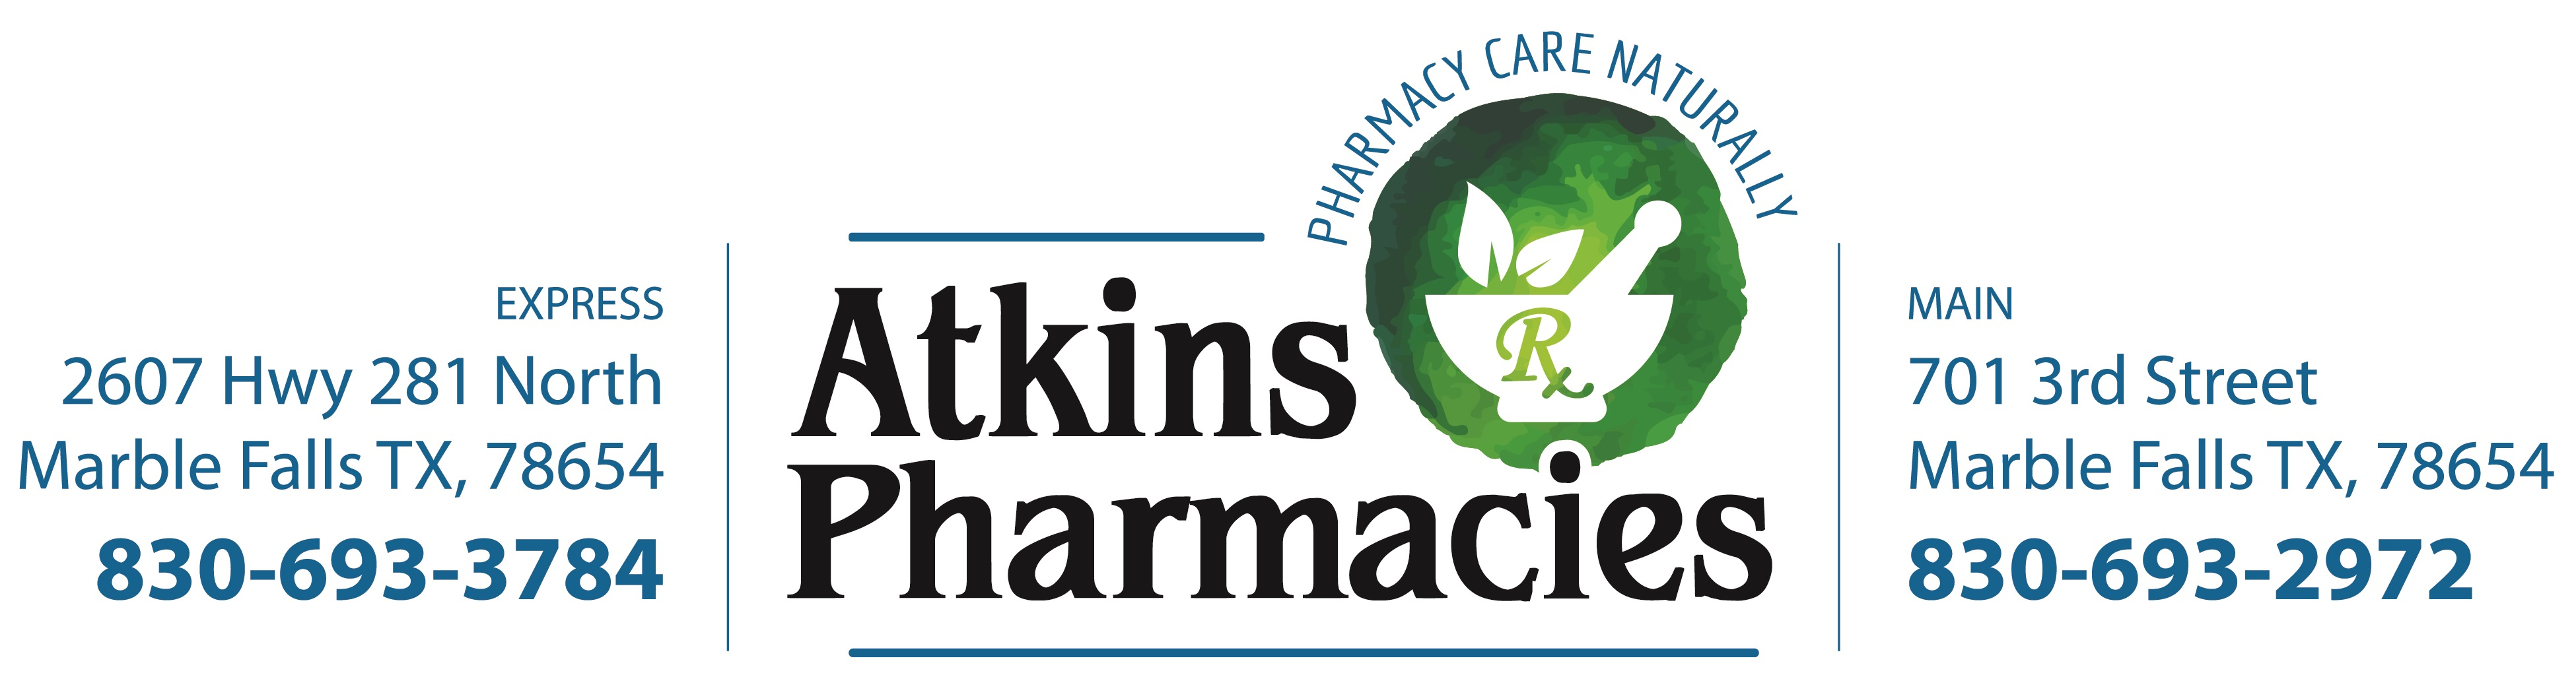 New - Atkins Pharmacy